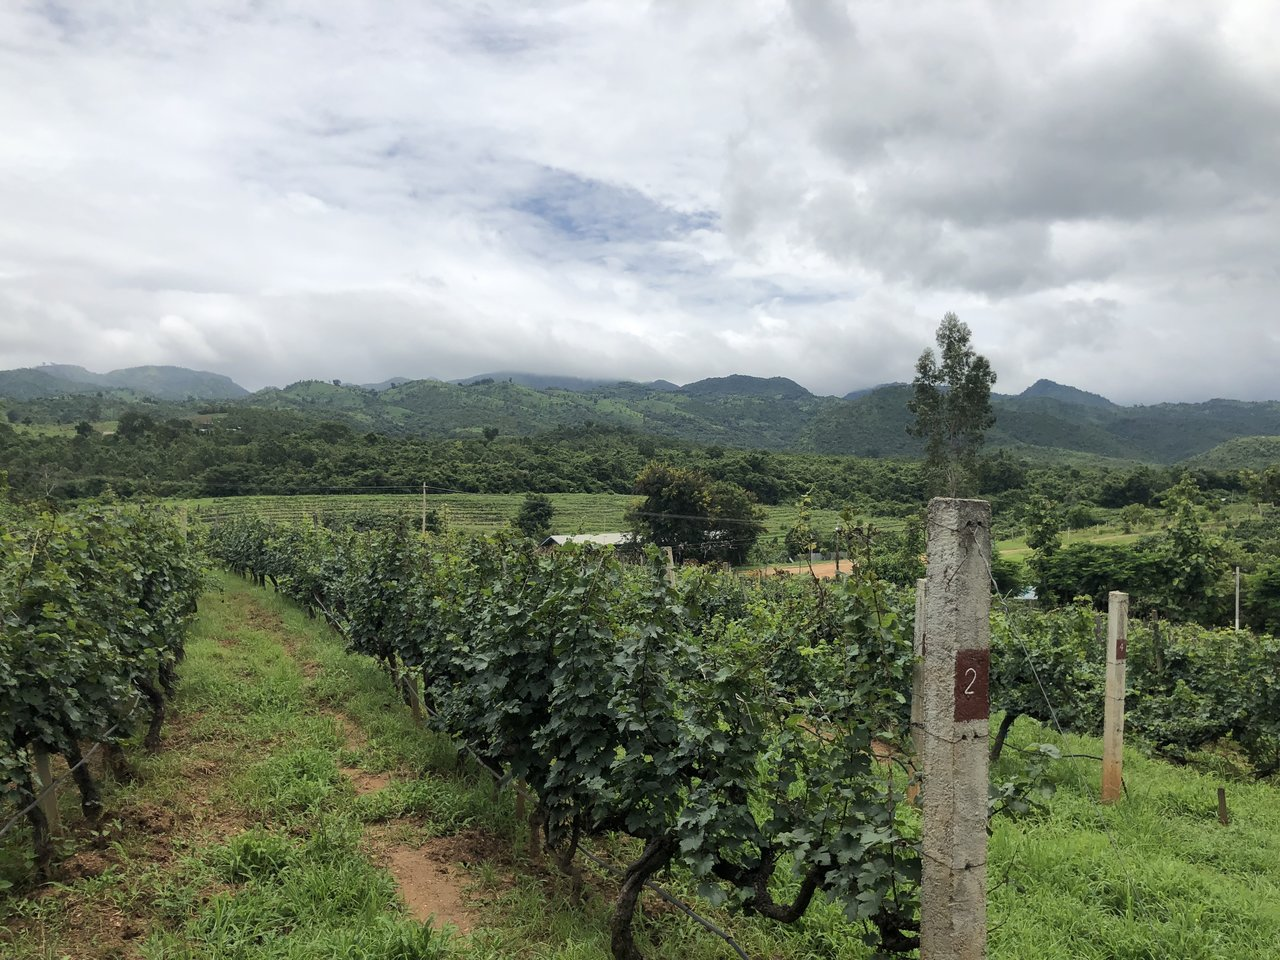 Red Mountain Estate Vineyards and Winery's grapevines | Photo taken by Su-Lin T